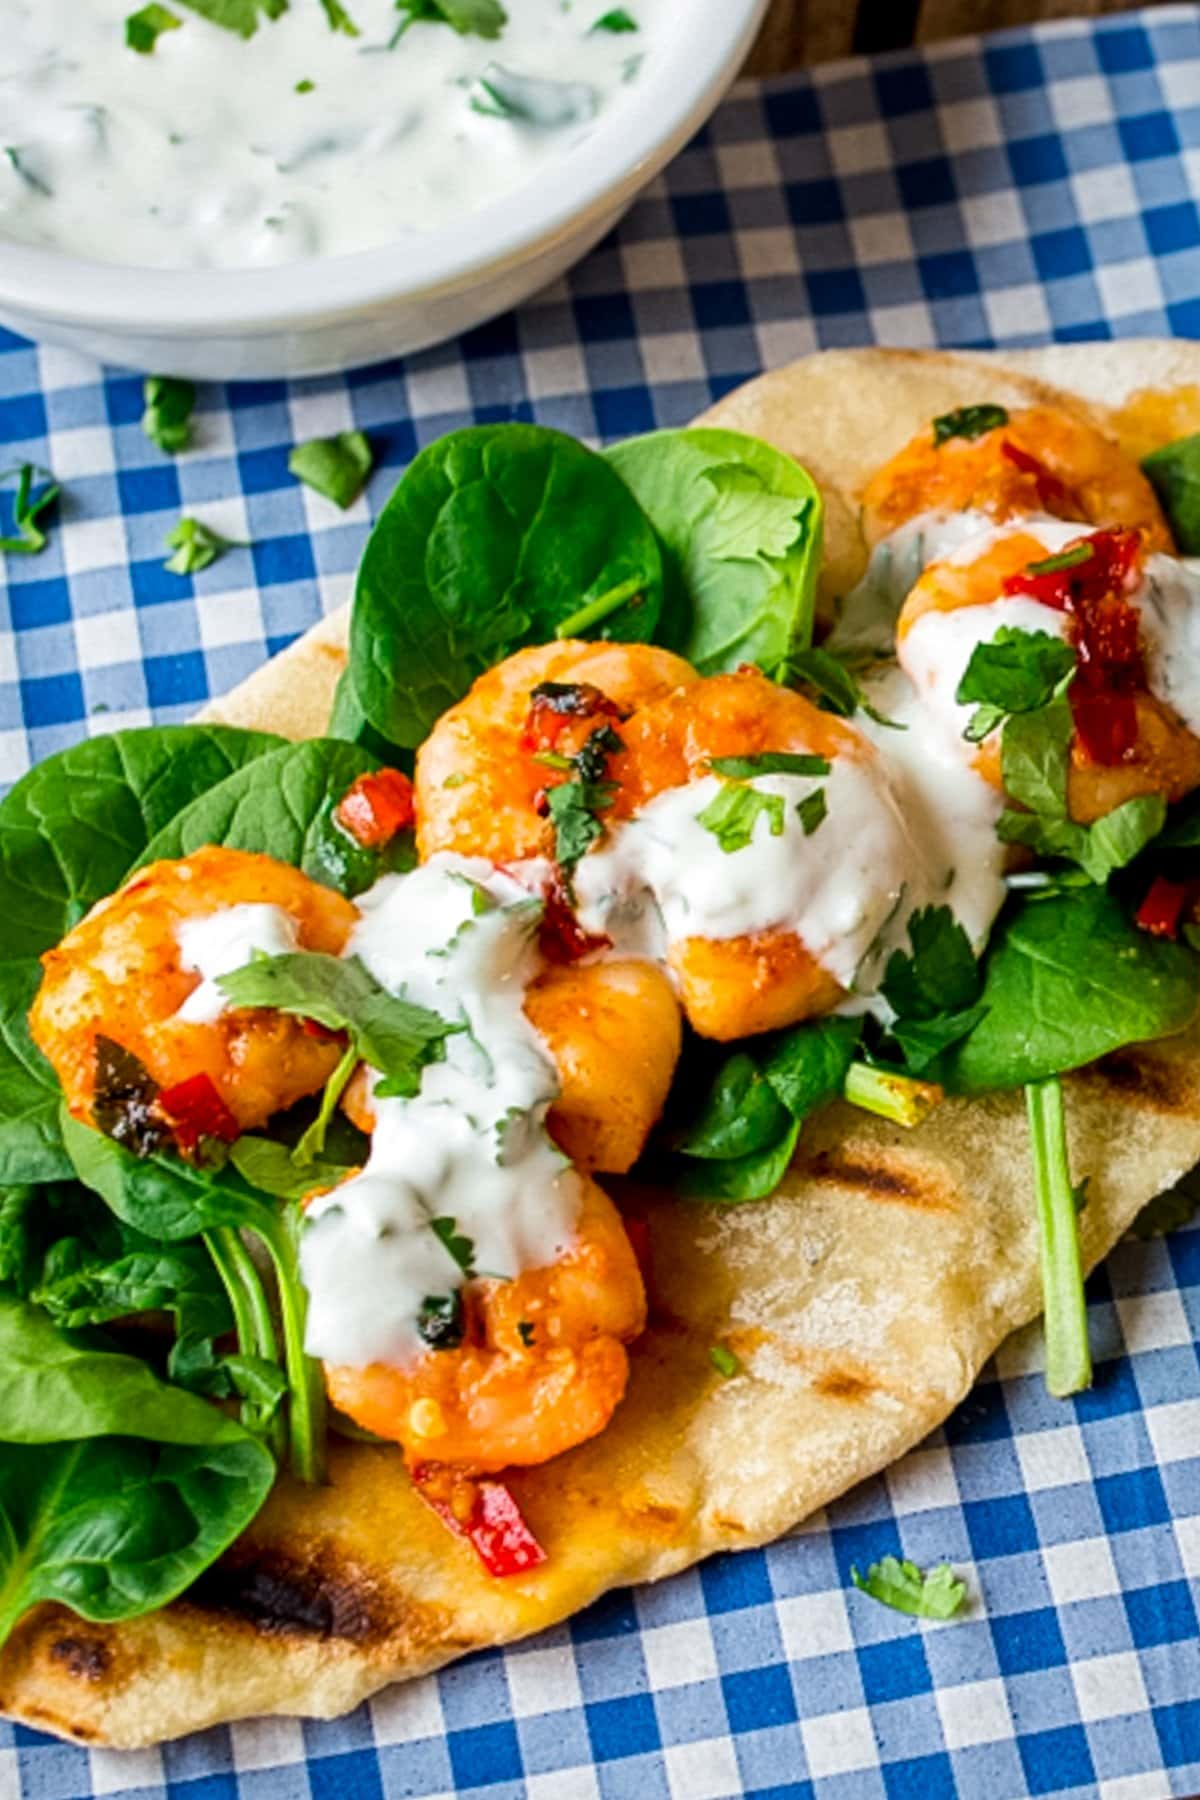 Tall image of Garlic chilli prawns with spinach and yogurt dip on homemade flatbread on a piece of blue chequered paper